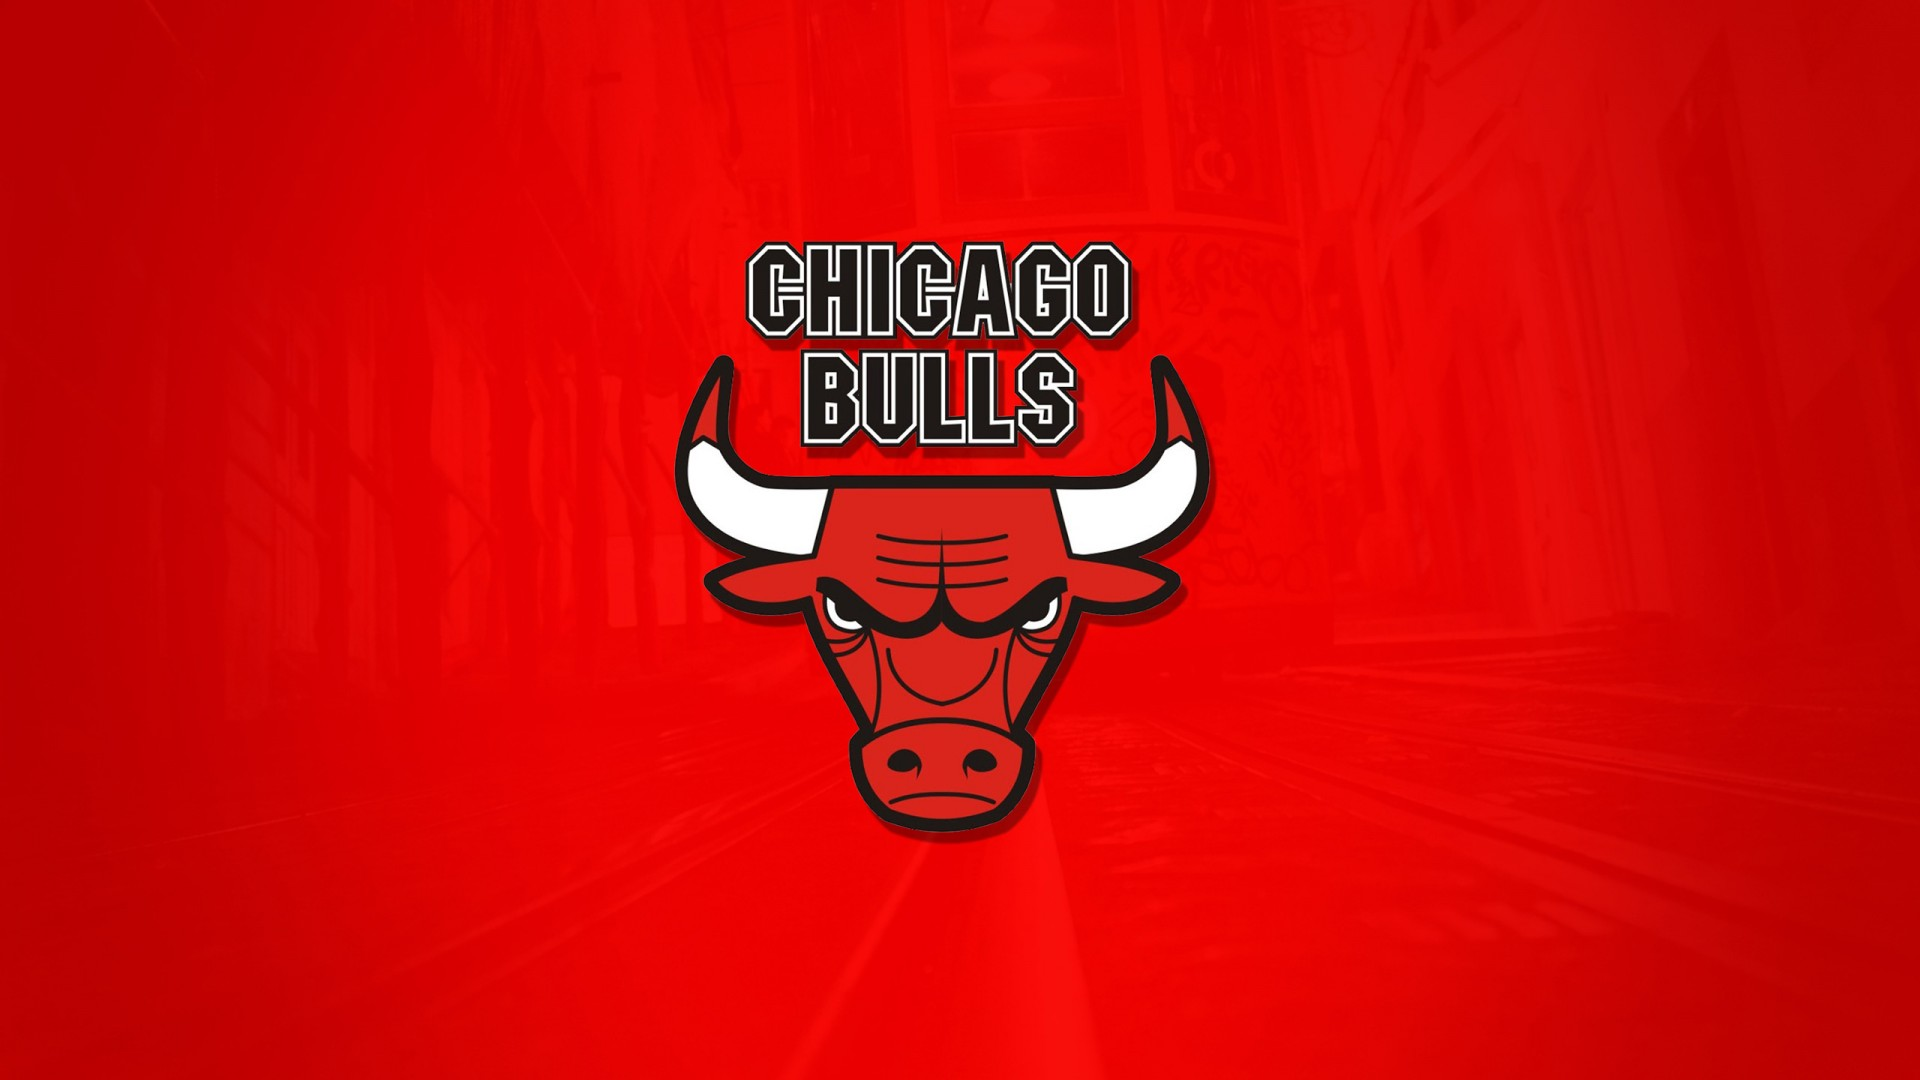 3d Chicago Bulls Wallpaper The Chicago Bulls Wallpapers Hd Wallpapers Id 17704